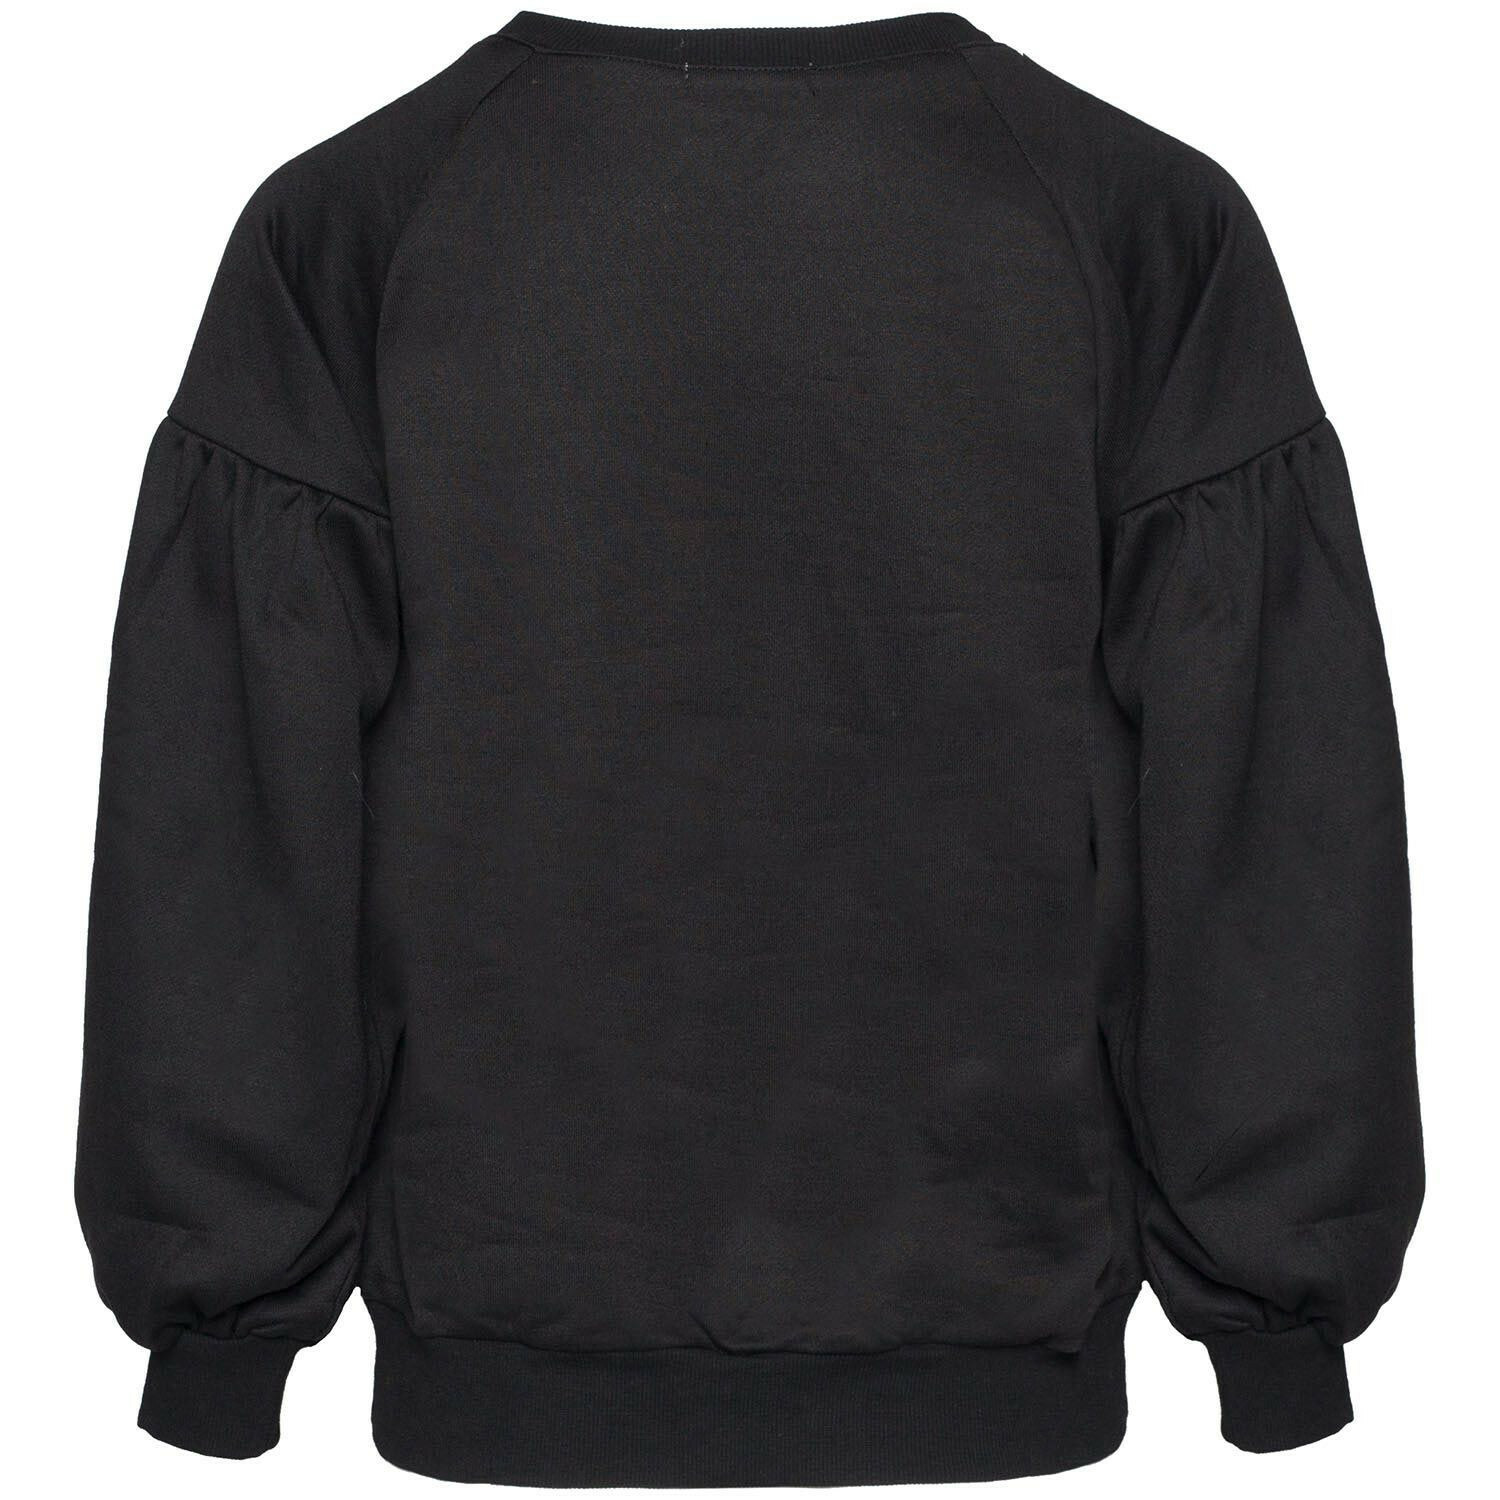 BLACK PUFFED SLEEVE SWEATER